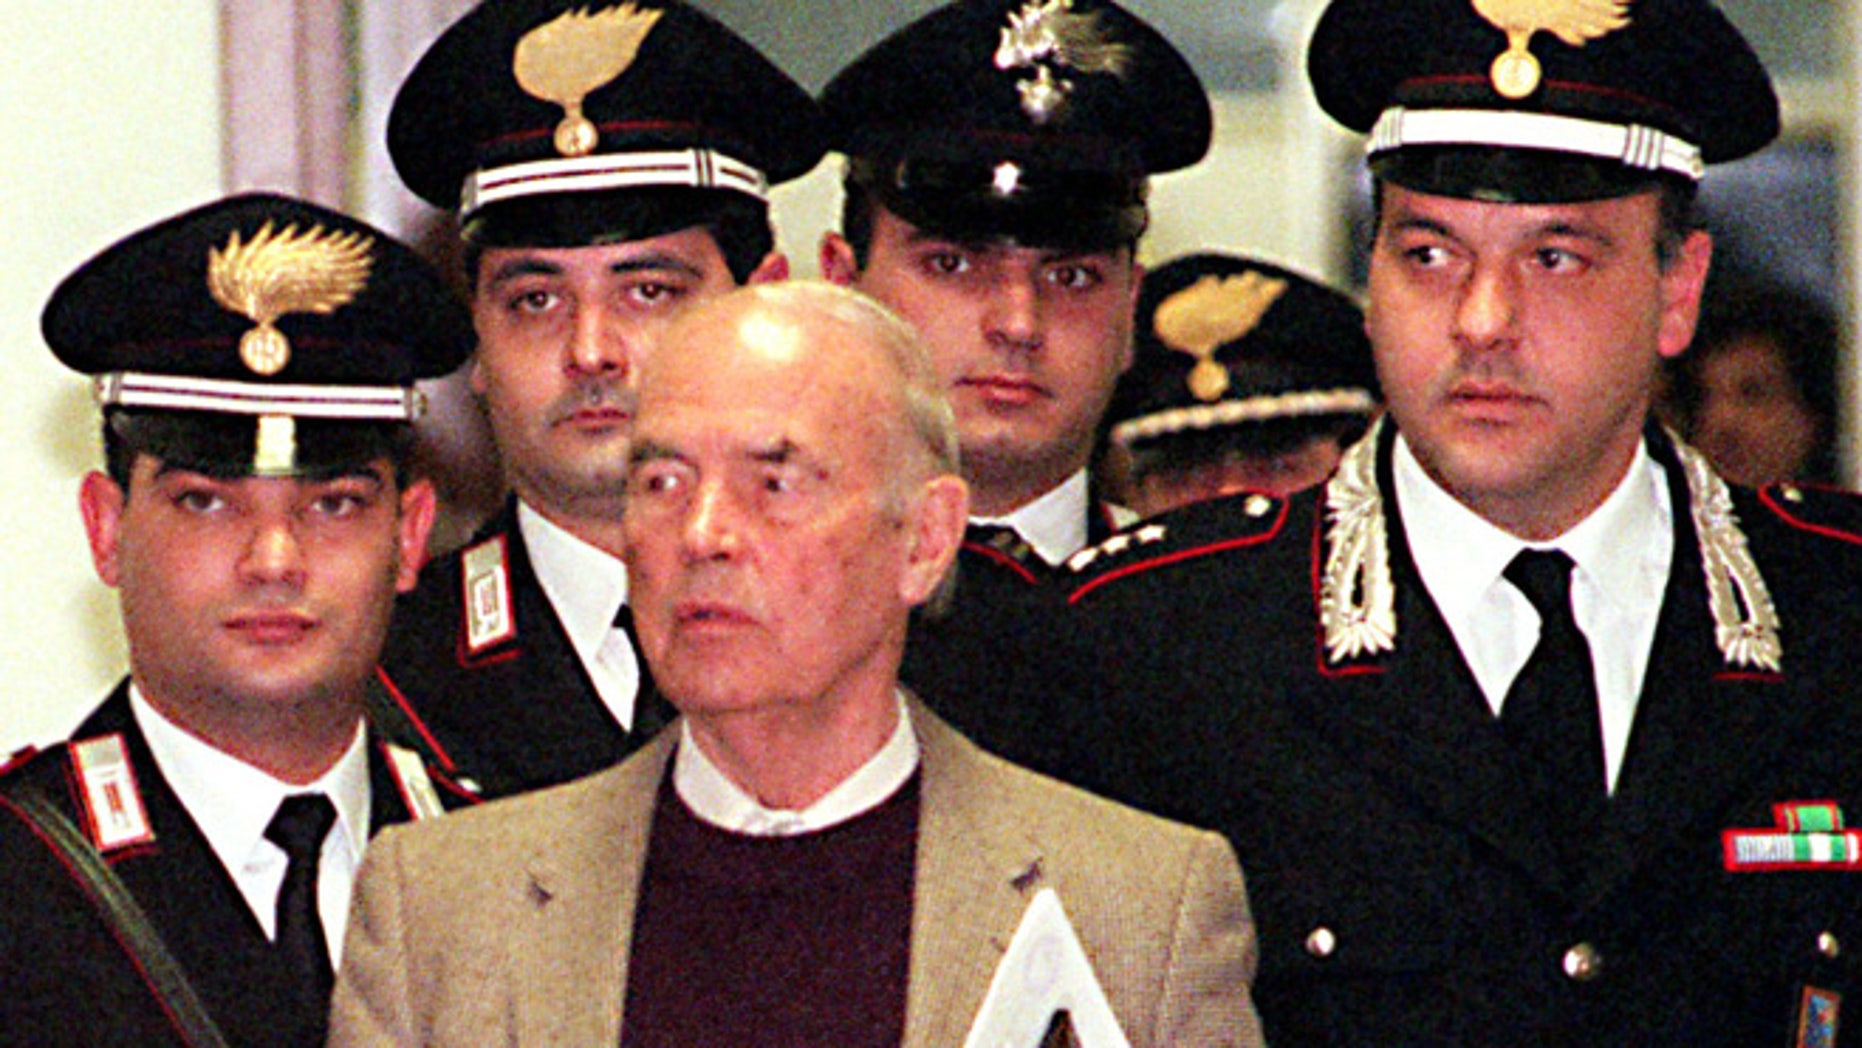 In this Thursday, Dec. 7, 1995 file photo, Former Nazi SS officer Erich Priebke enters the military court in Rome. Priebke, a former Nazi SS captain, was sentenced to life in prison for his role in one of the worst atrocities by German occupiers in Italy during World War II. In 1994, Priebke was extradited to Italy from Argentina and put on trial for his role in the 1944 massacre outside Rome. Nazi forces killed 335 civilians to avenge an attack by resistance fighters that killed 33 members of a Nazi military police unit a day earlier. Priebke admitted shooting two people and rounding up victims, but insisted he was only following orders.